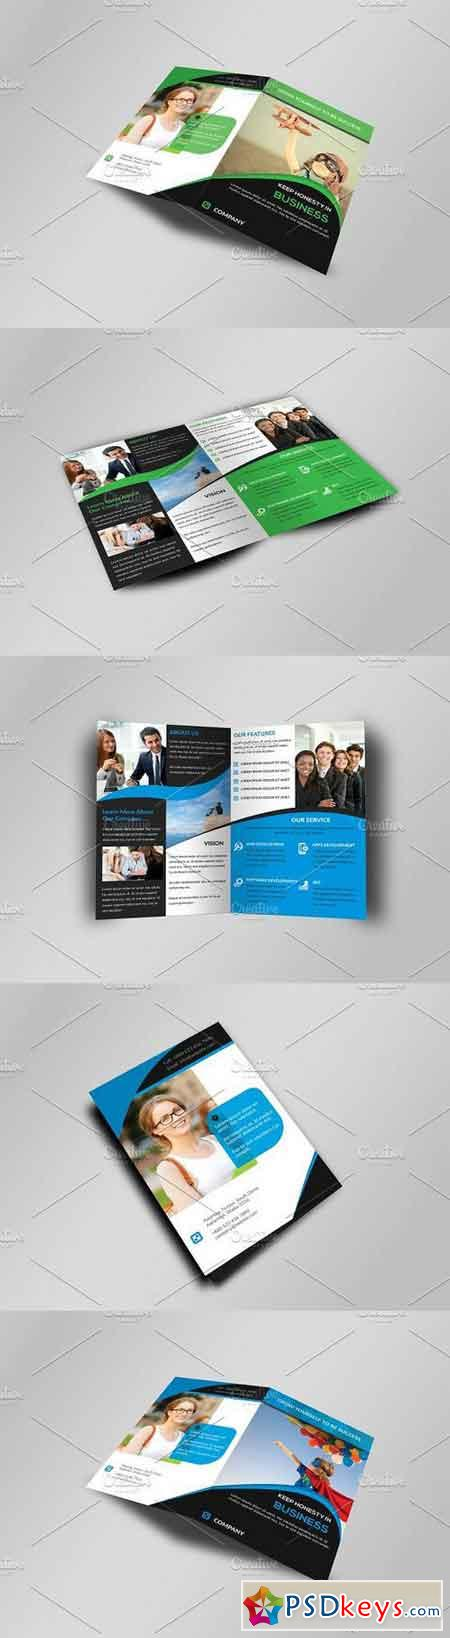 Corporate Bi-Fold Business Brochure 336636